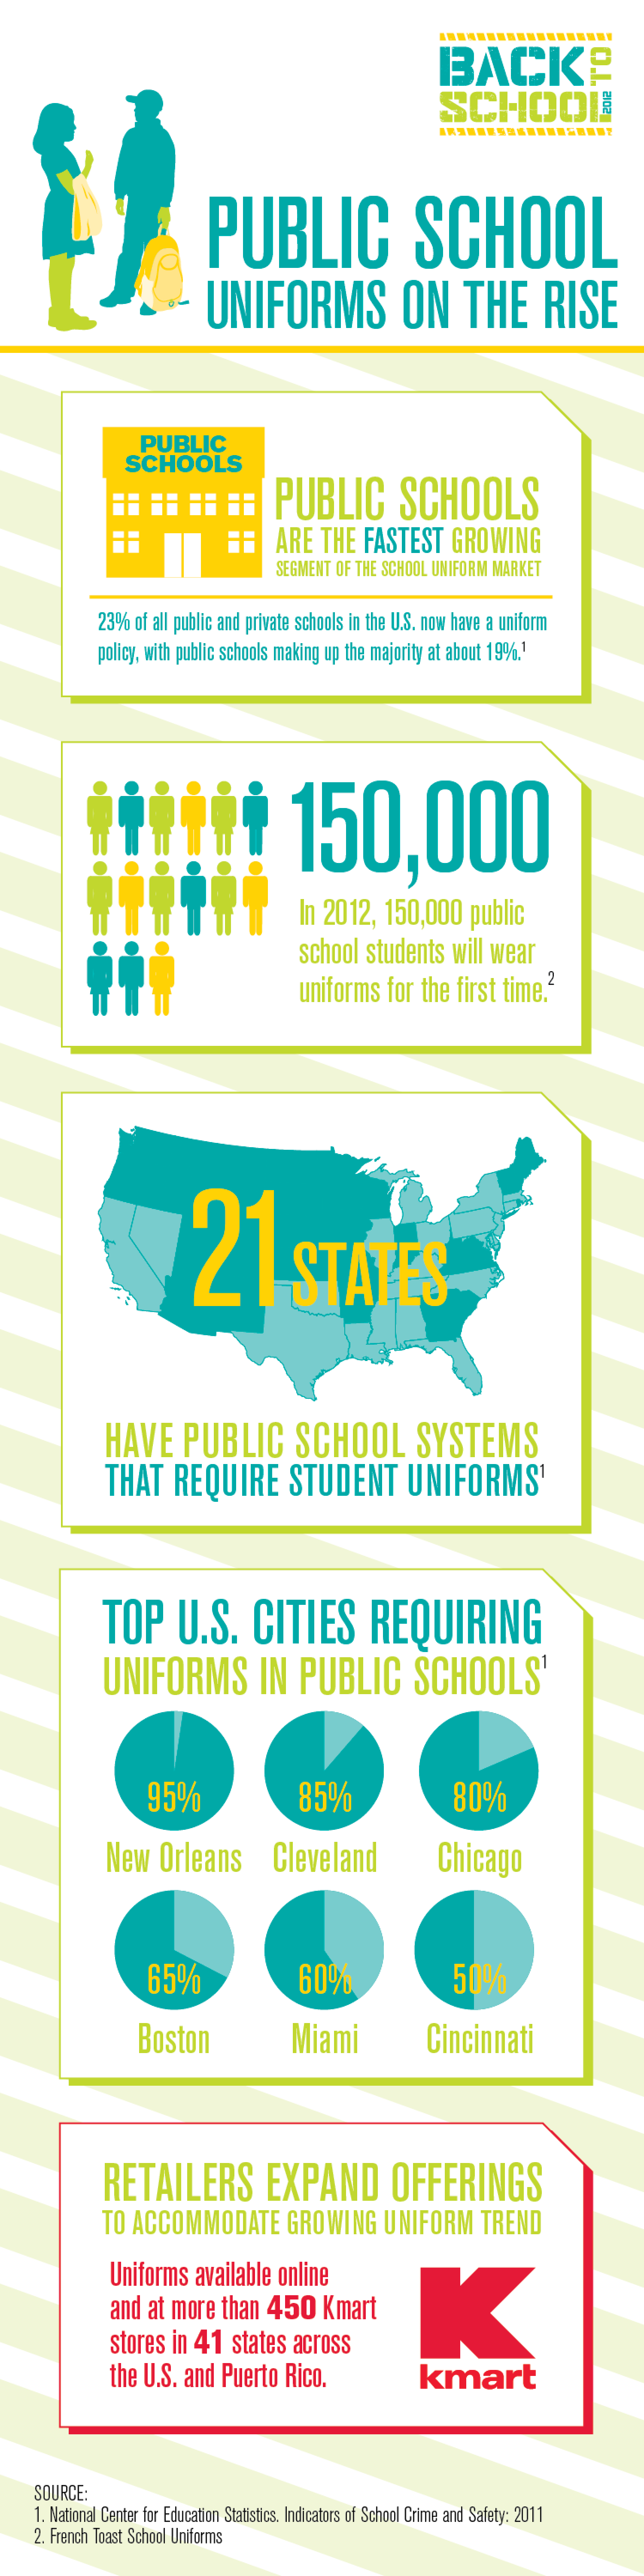 Public School Uniforms on the Rise Infographic